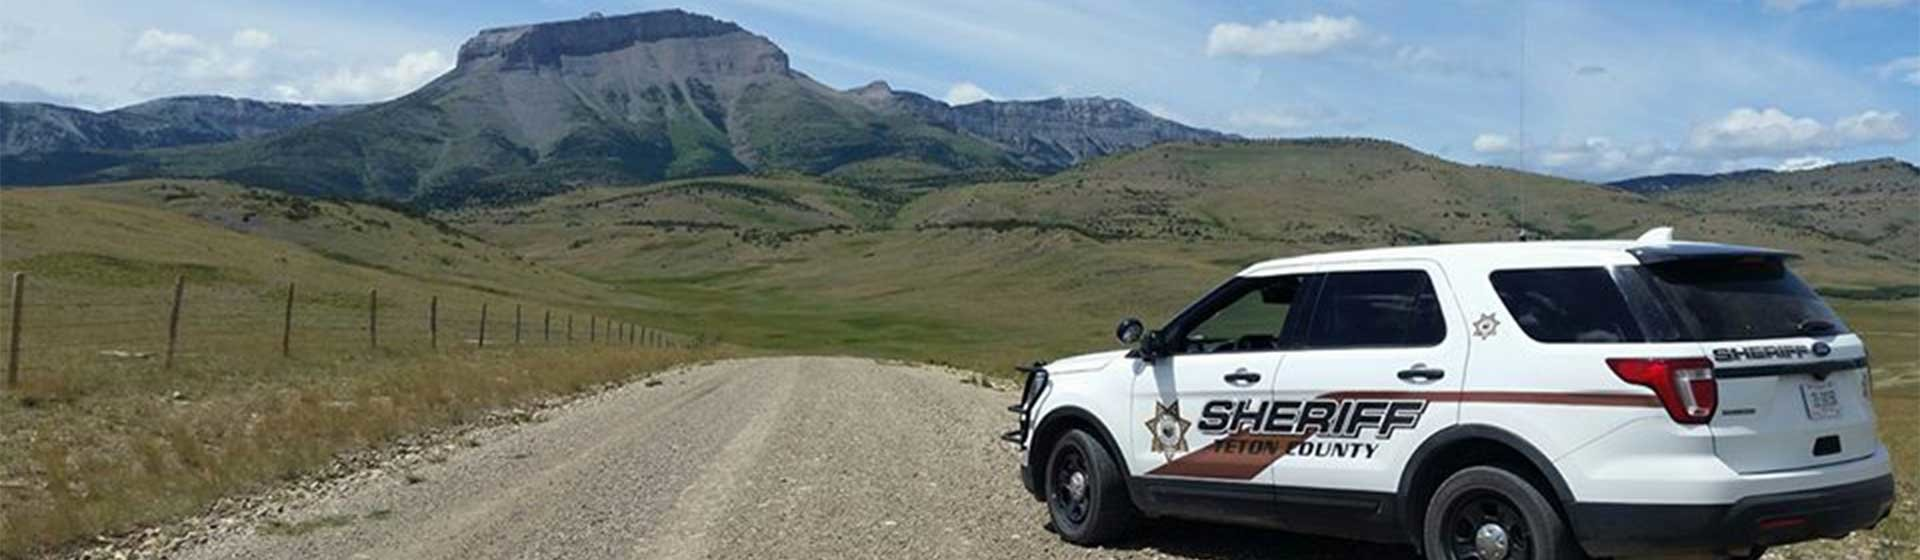 Sheriff vehicle with mountain range in the distance